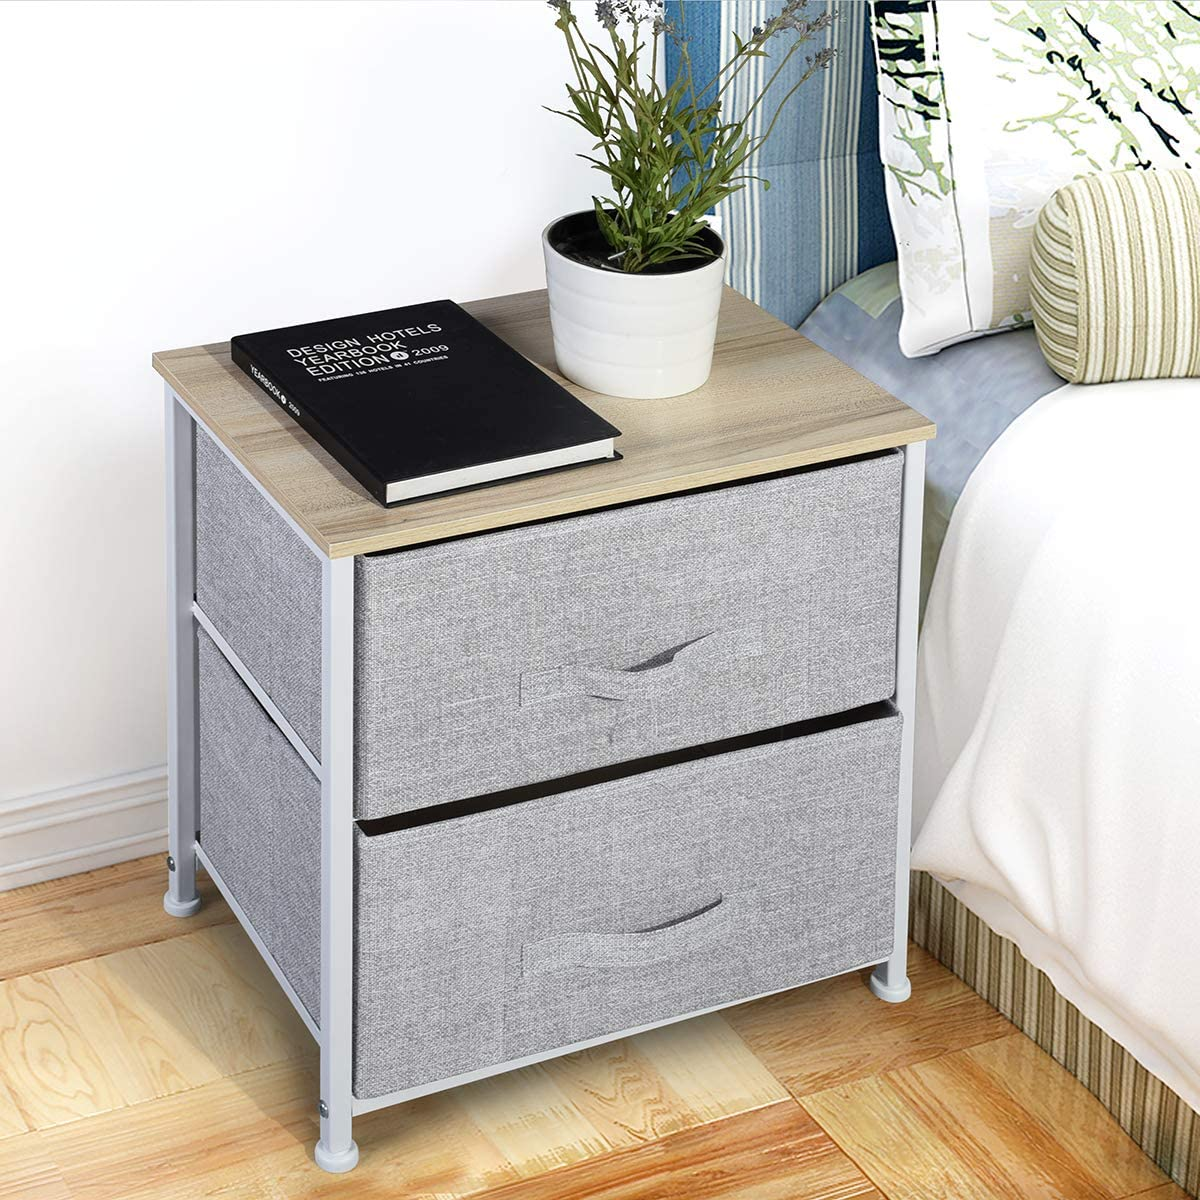 Aingoo Pack of 2 Fabric Drawer Storage Drawer Tower Units Bedroom Living Room Entryway Closet Organizer Cabinet with Metal Frame Grey